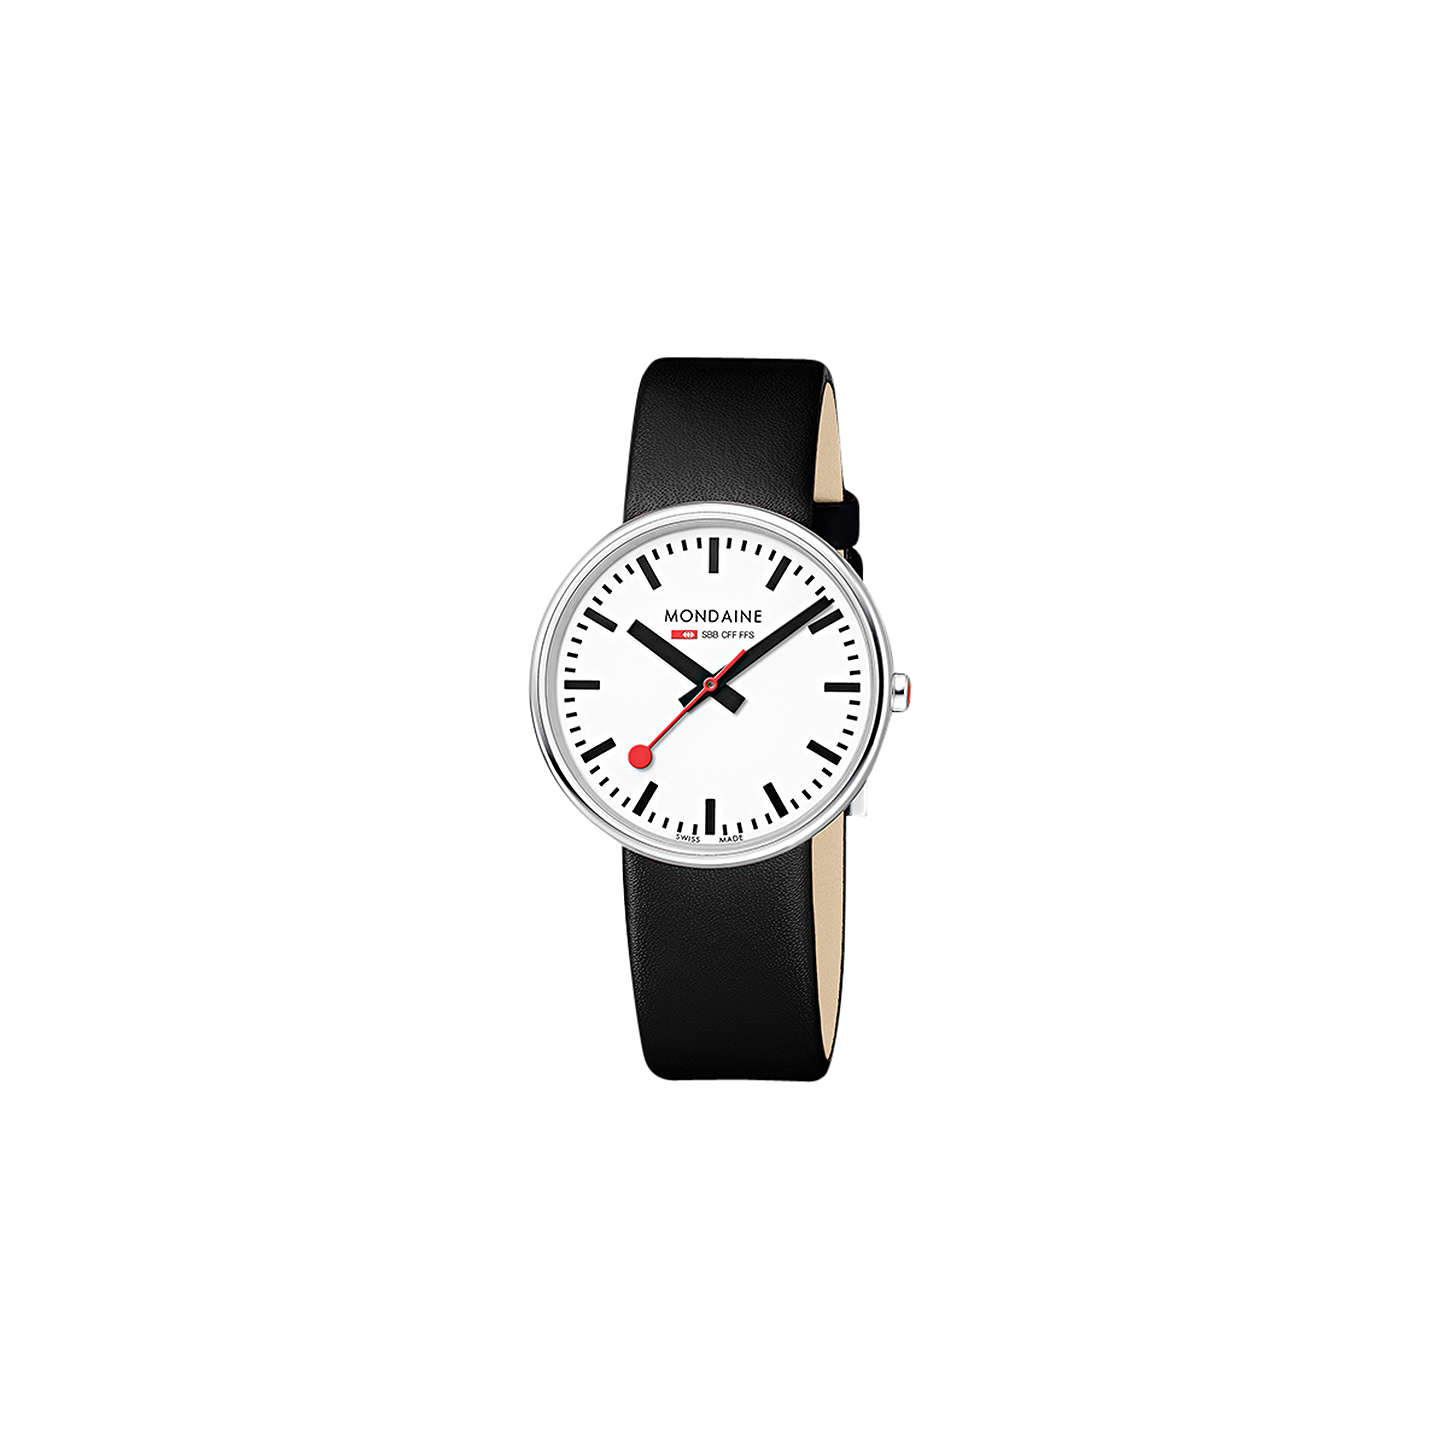 lewis watch main john leather watches mondaine rsp online at buymondaine white johnlewis giant pdp mini strap unisex black